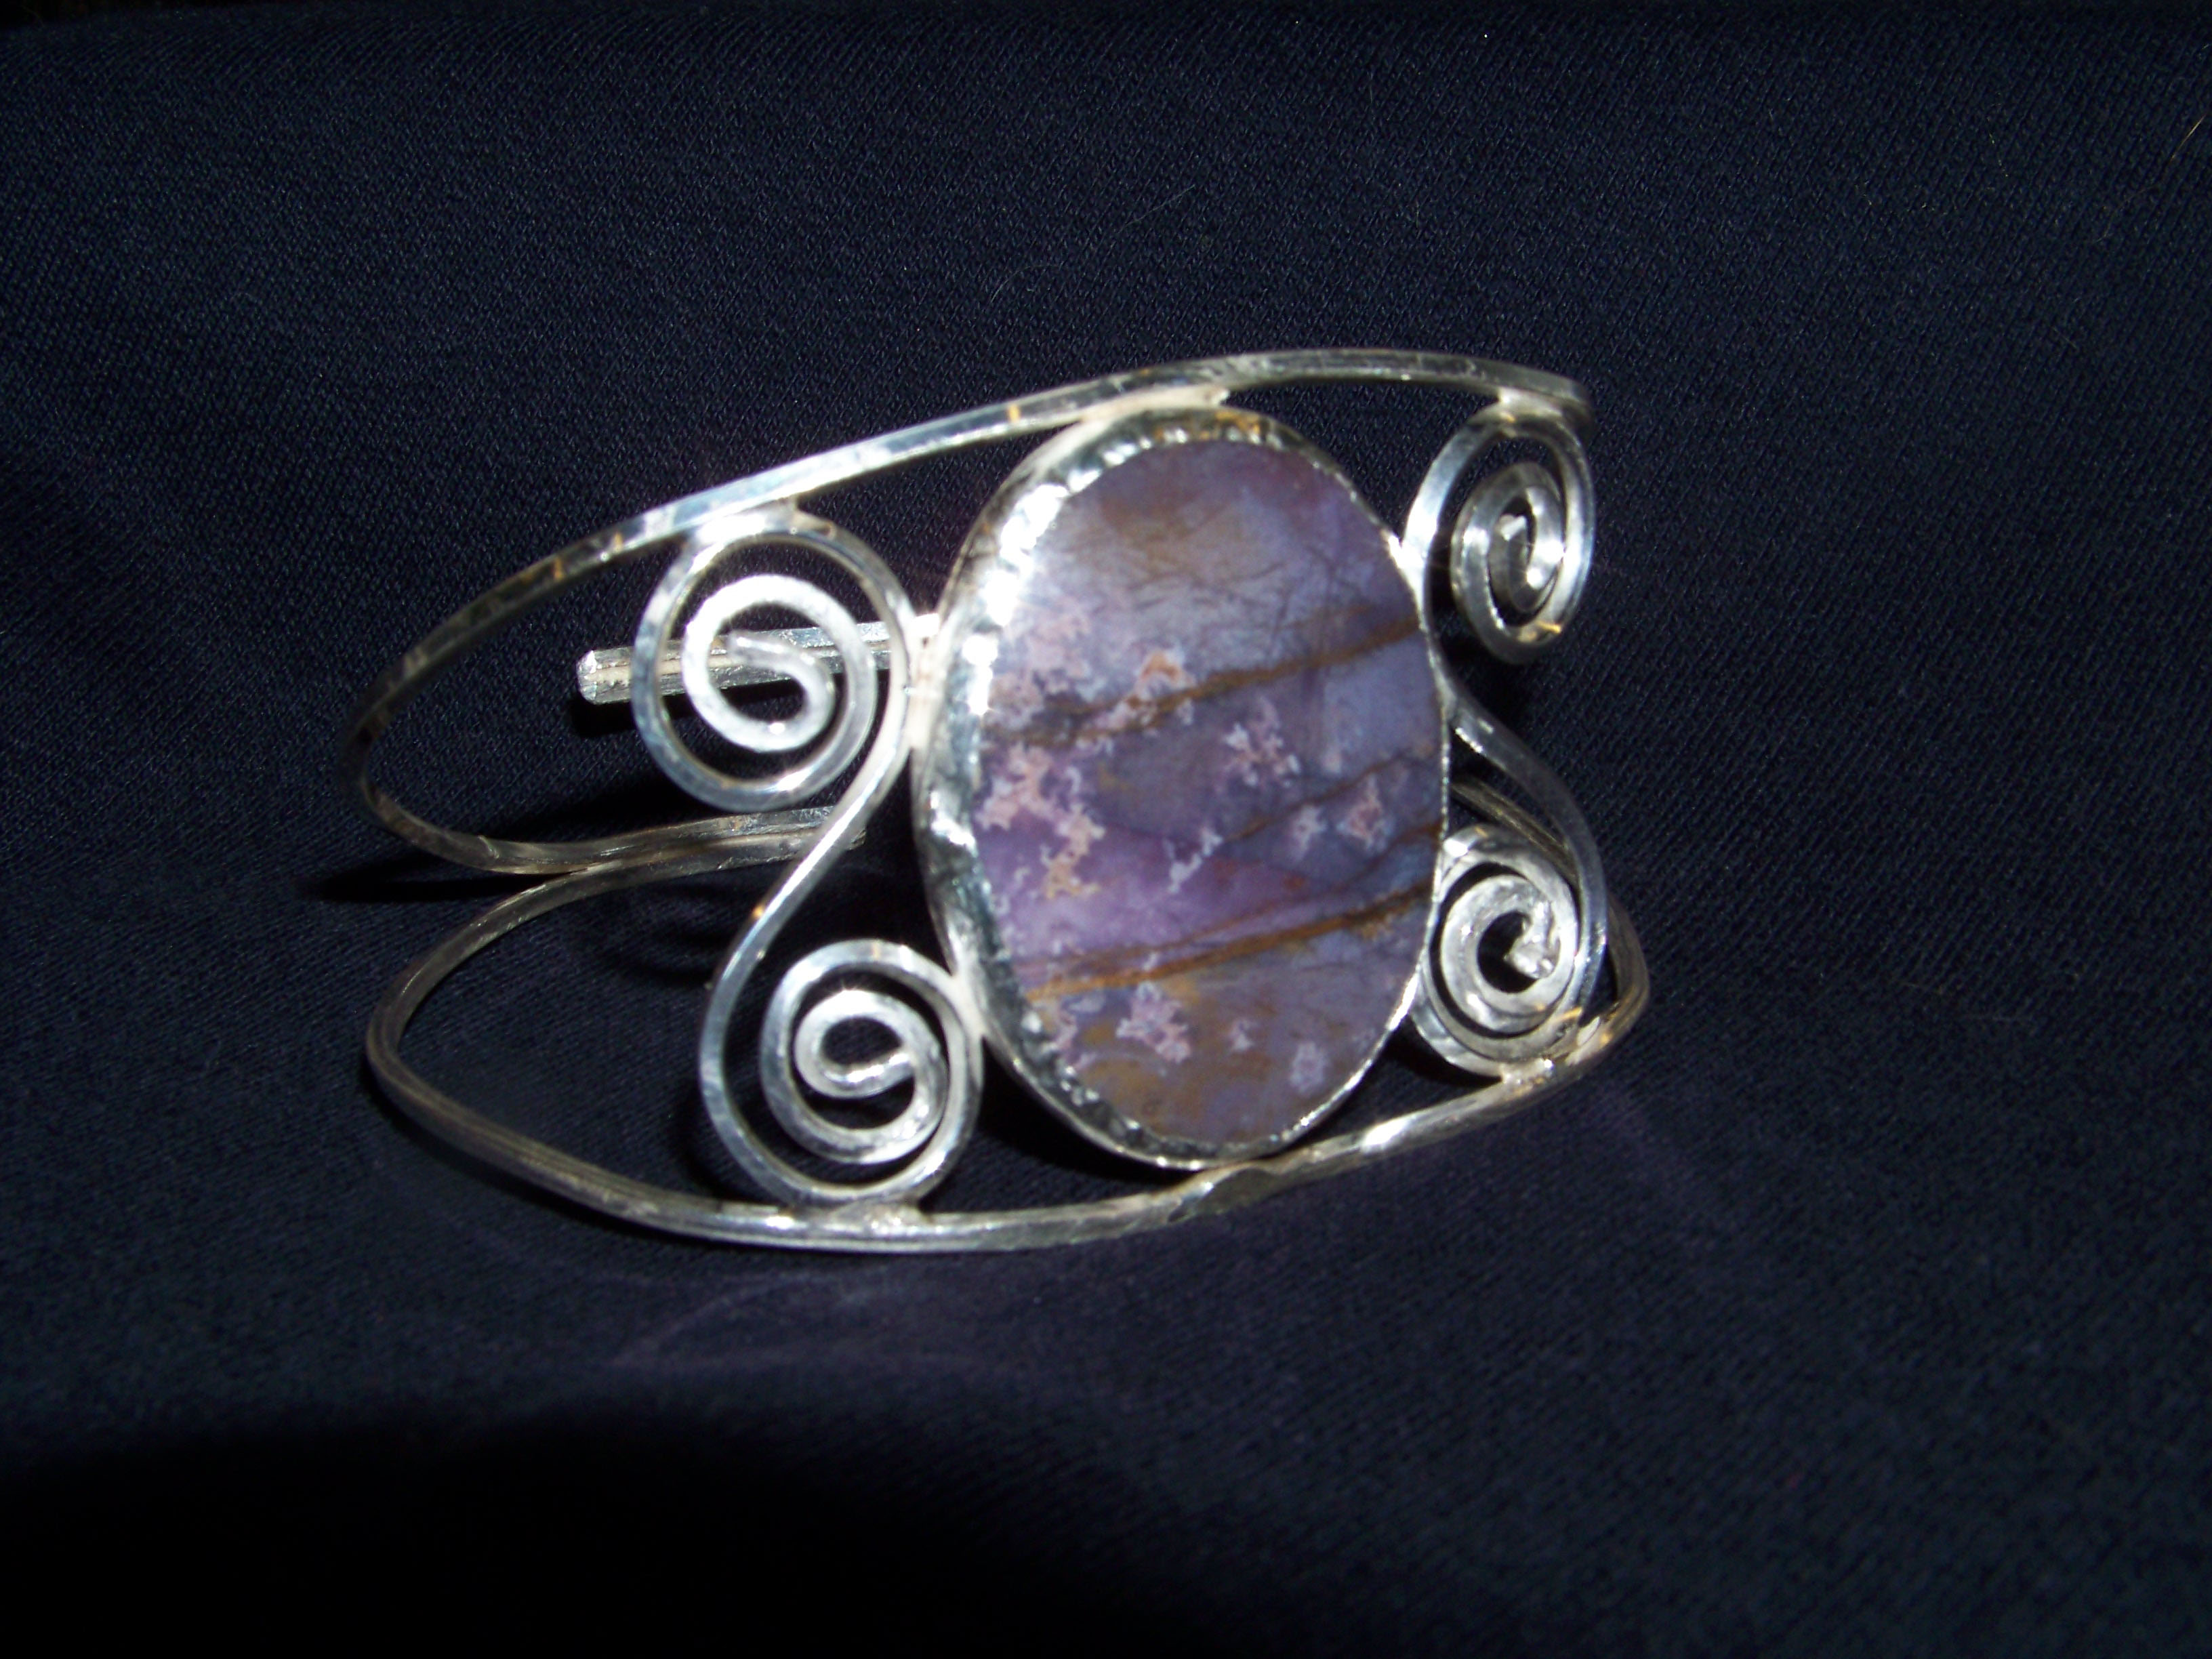 Silver Bracelet with lace agget stone